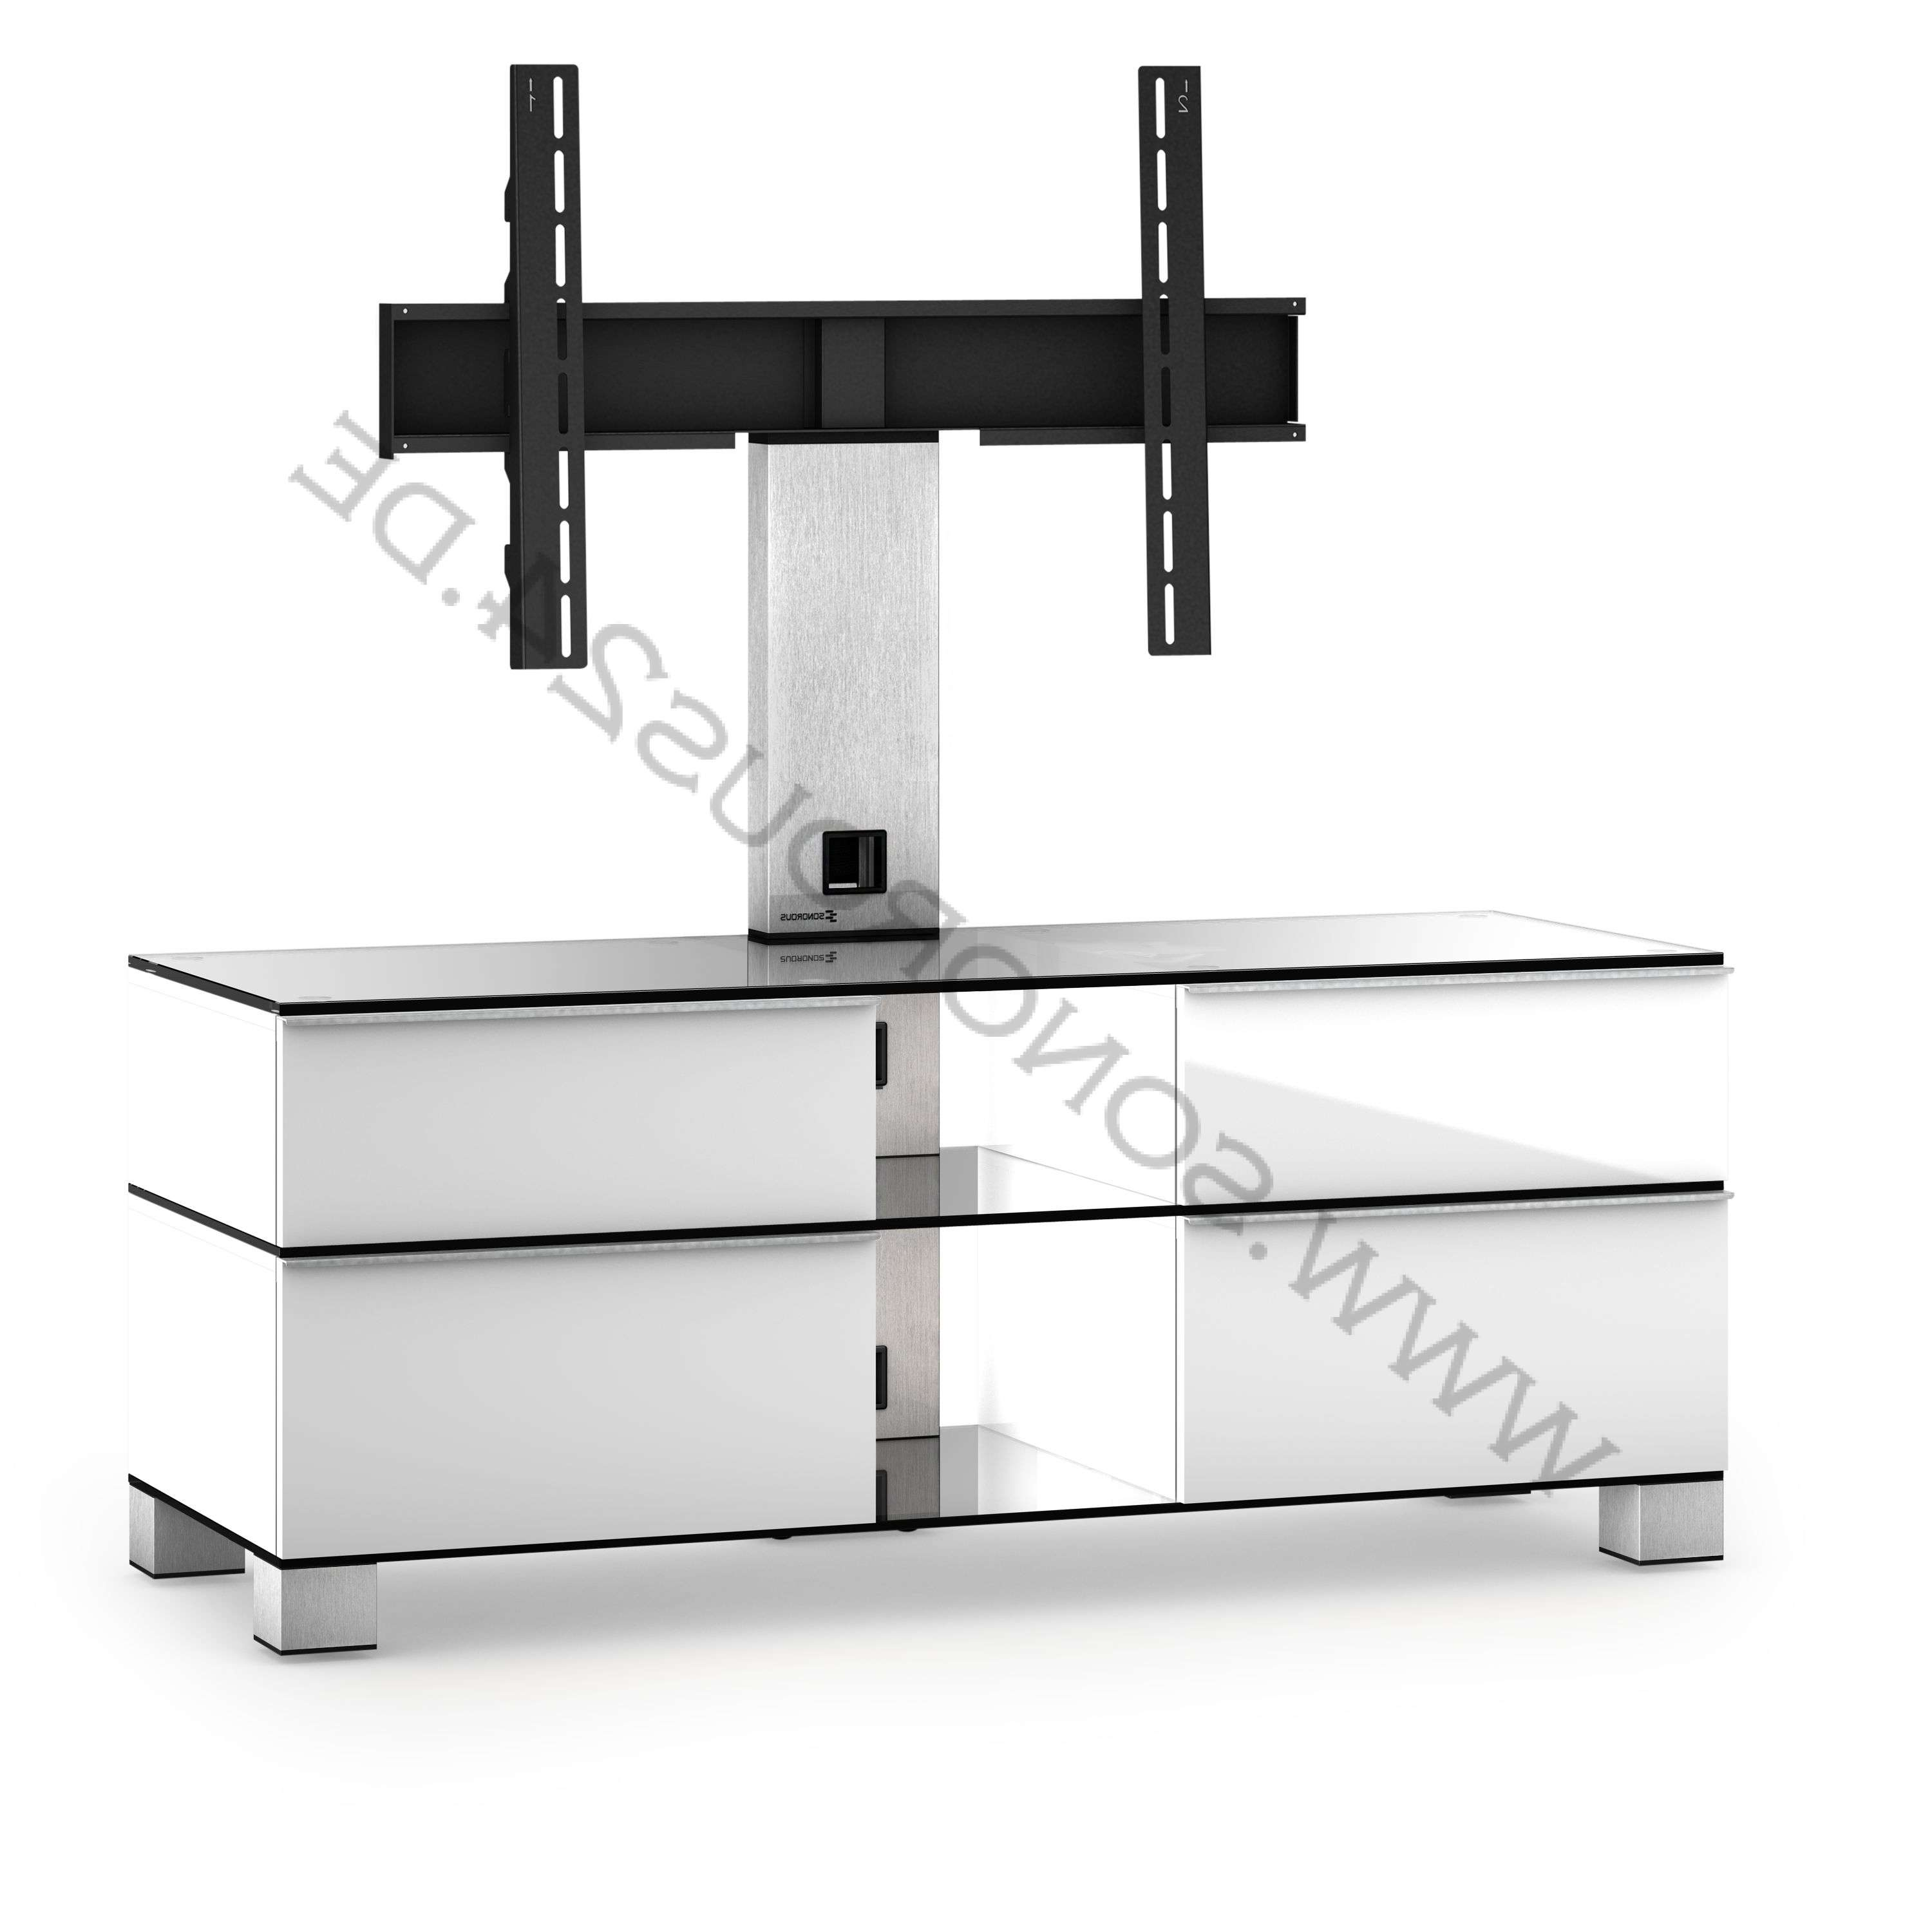 Sonorous Tv Rack, Tv 50 Inch – Sonorous – Md 8220 C Inx Wht Md With Regard To Sonorous Tv Cabinets (View 17 of 20)